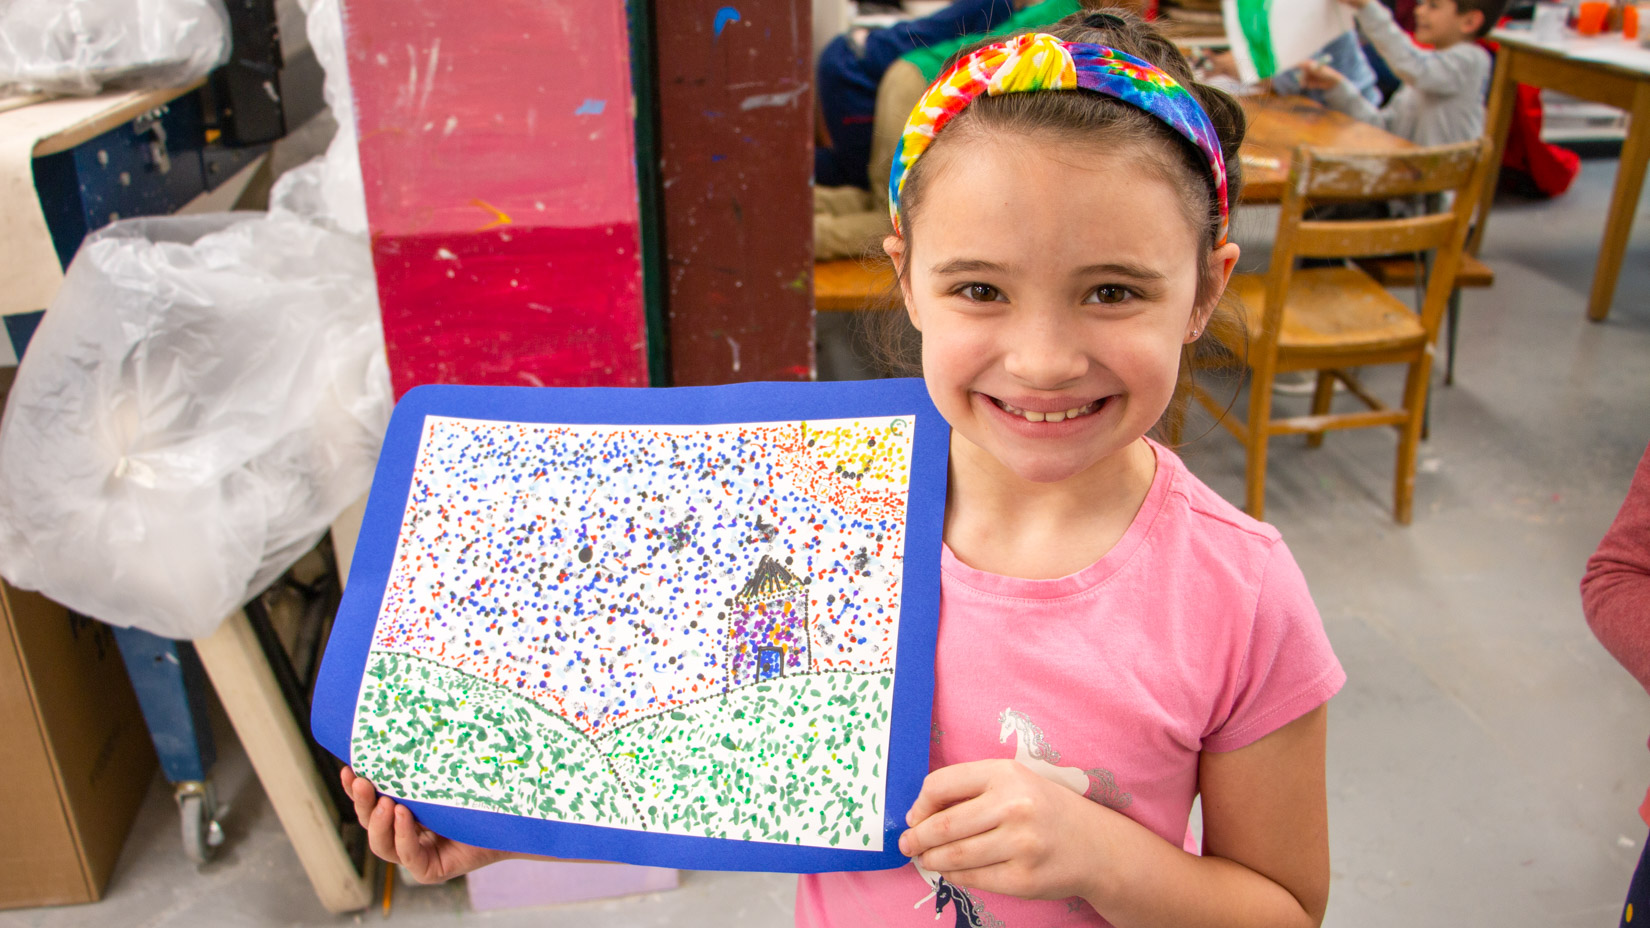 A student smiling with their drawing.